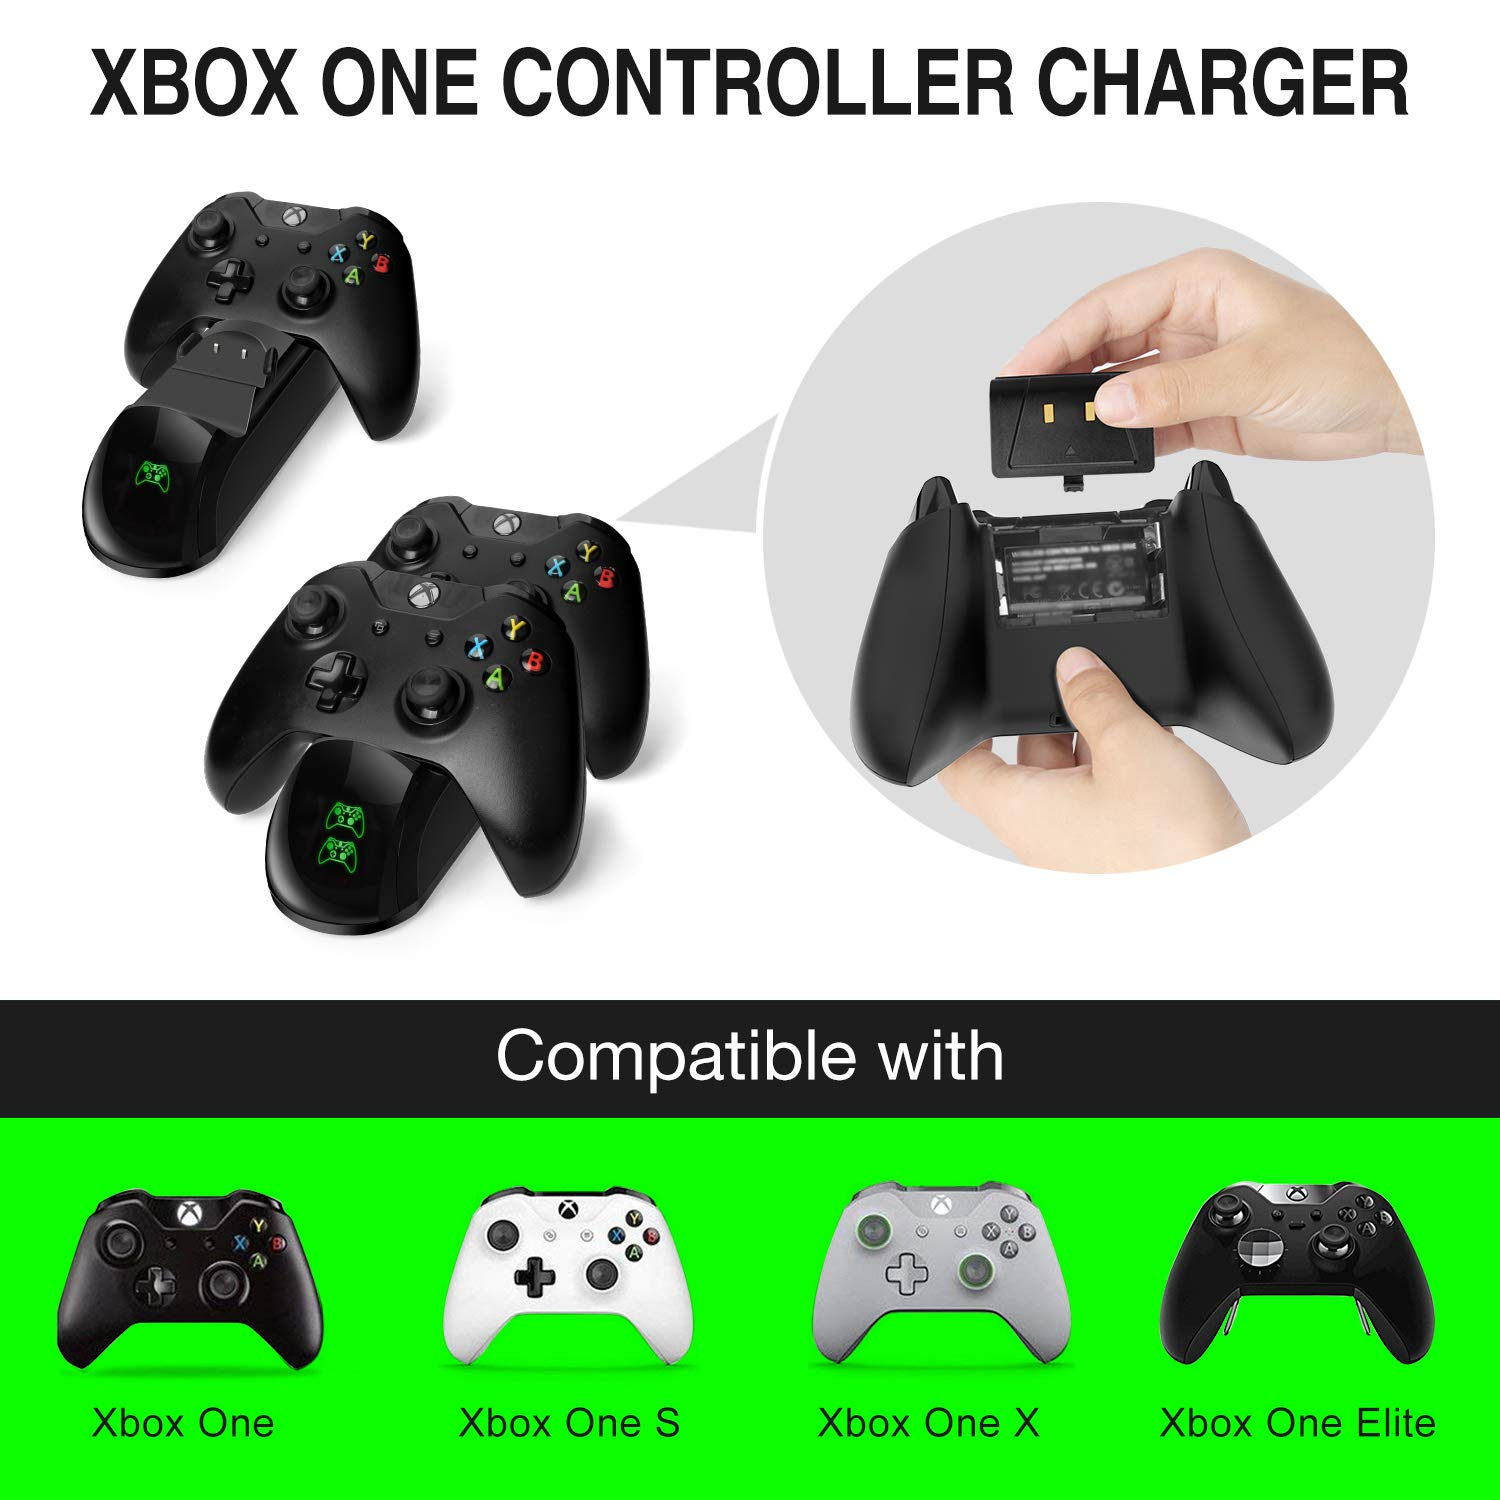 Xbox One Controller Charger 2x1200mAh Rechargeable Battery Packs for Xbox One/One S/One X Charging Station Dual Xbox Wireless Charger Dock